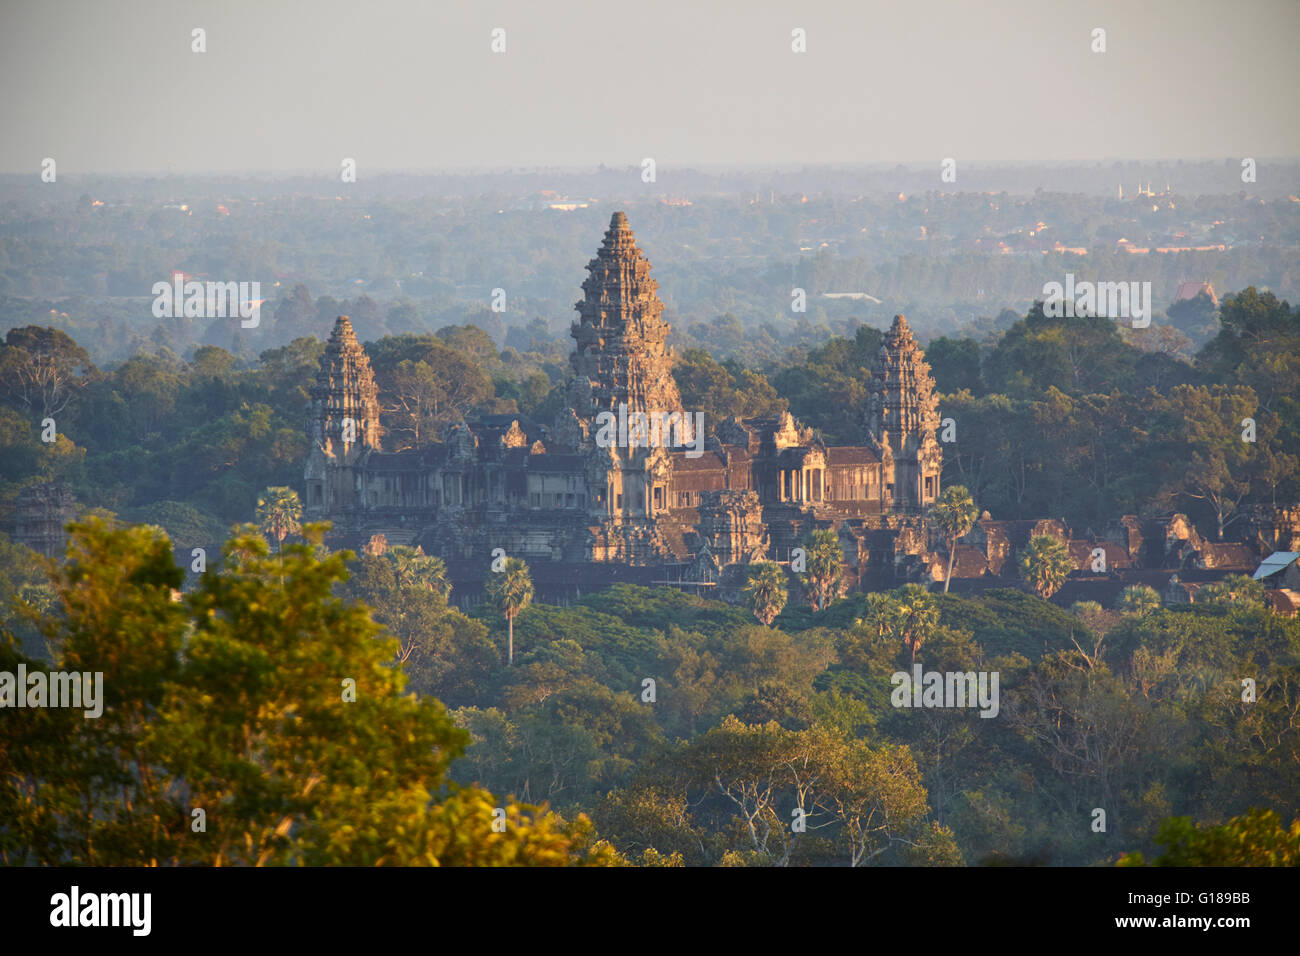 Aerial view of Angkor Wat temple, Siem Reap, Cambodia - Stock Image